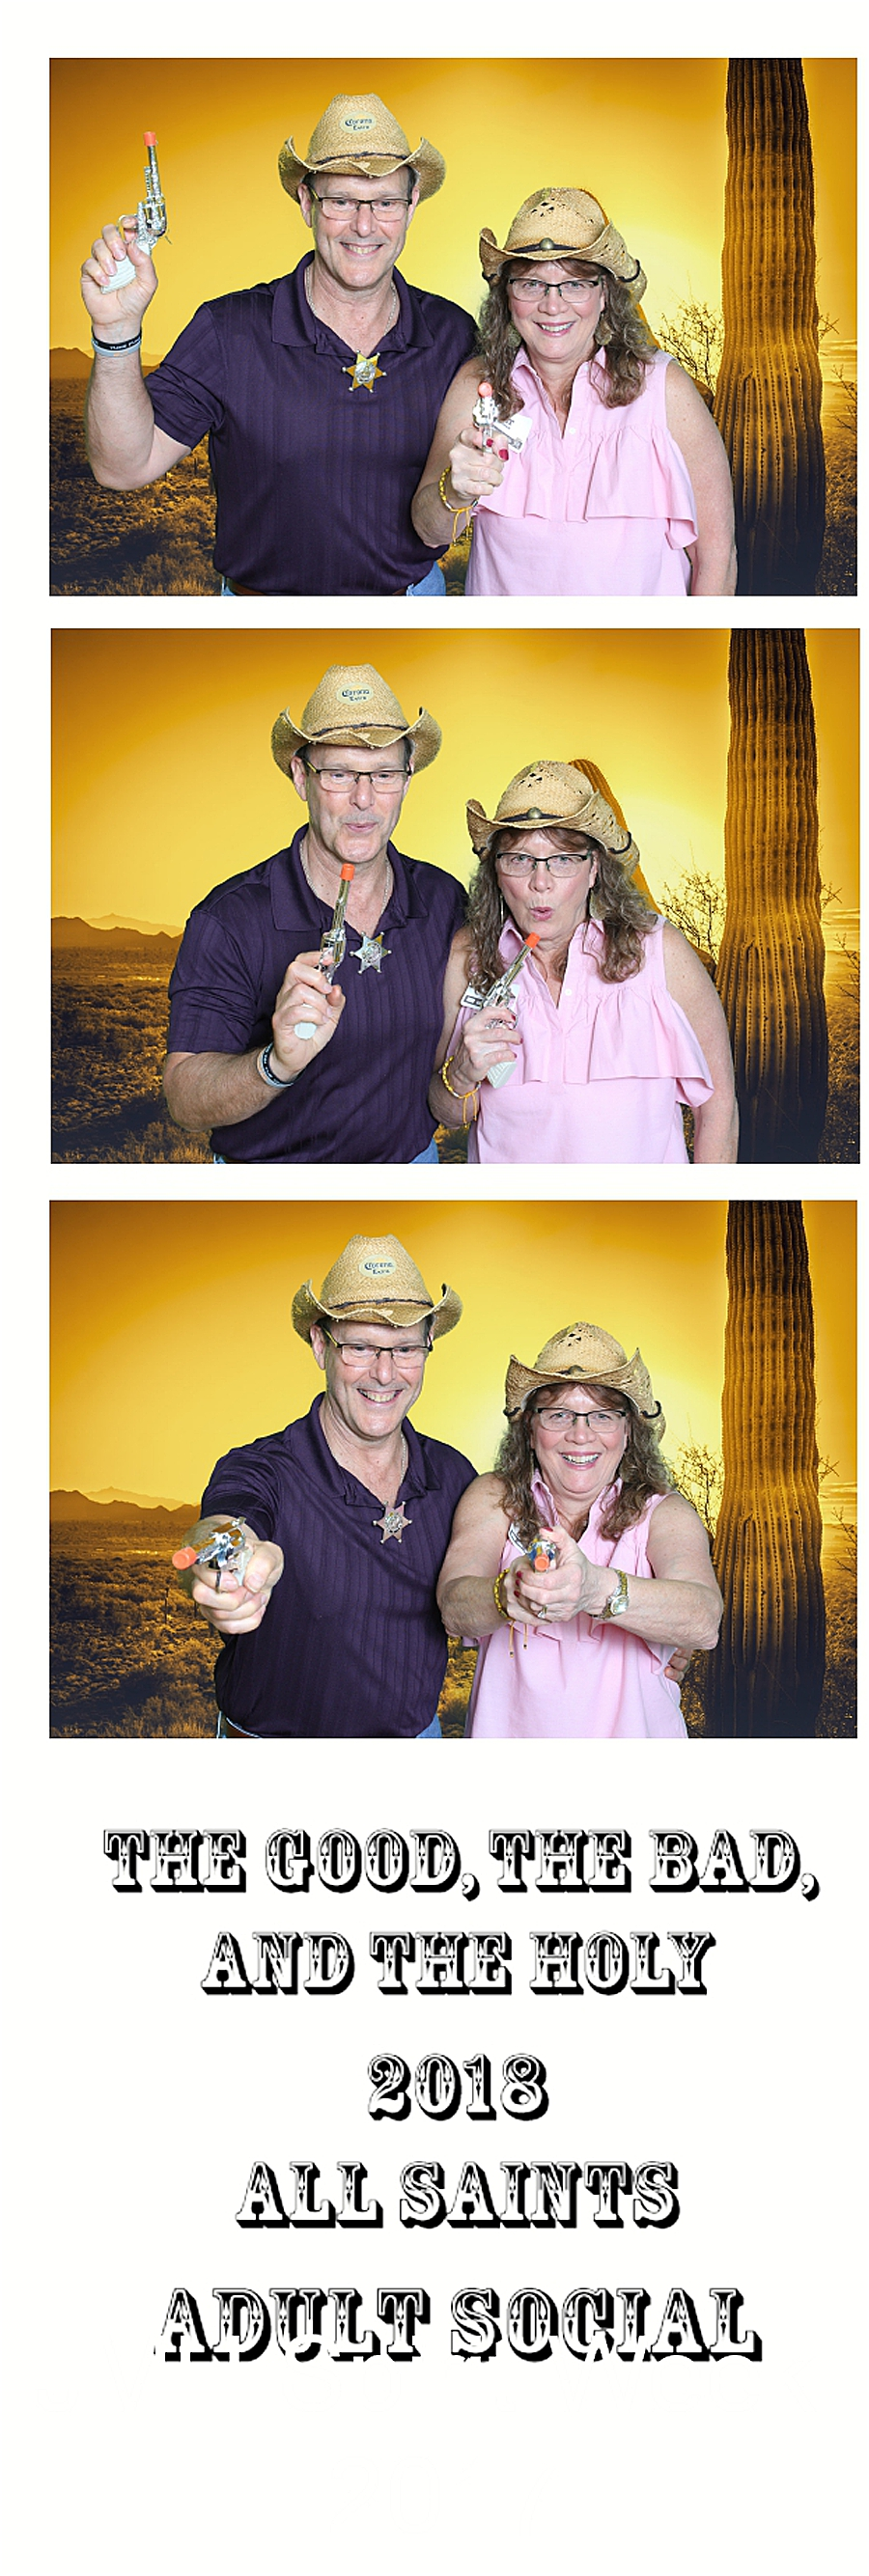 Knoxville Photo Booth_1327.jpg